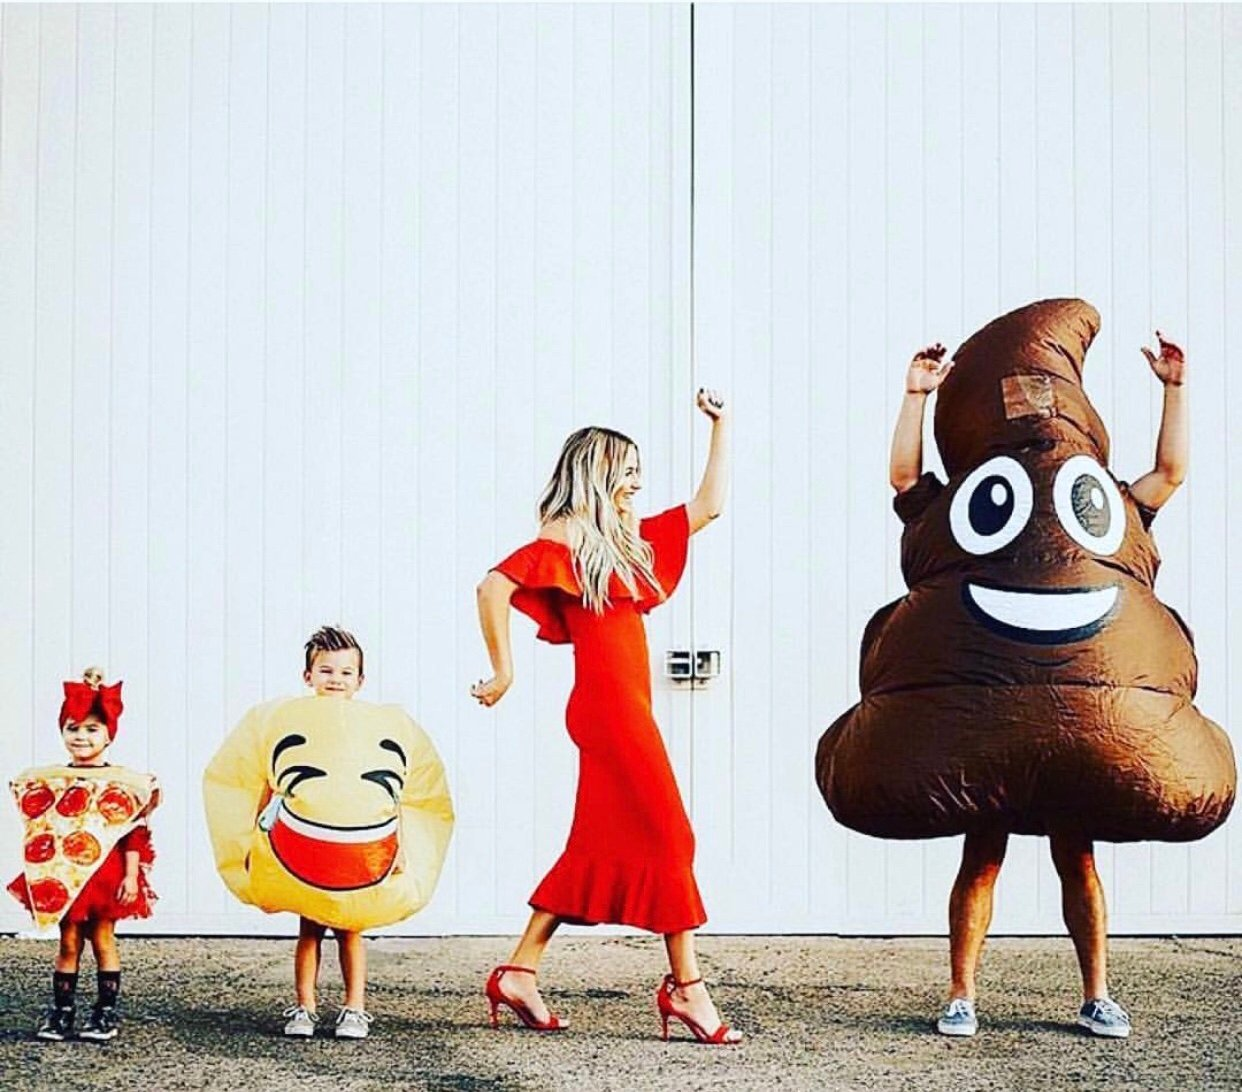 Funny Family Of 3 Halloween Costumes.17 Family Halloween Costumes That Are Creative Funny Cute